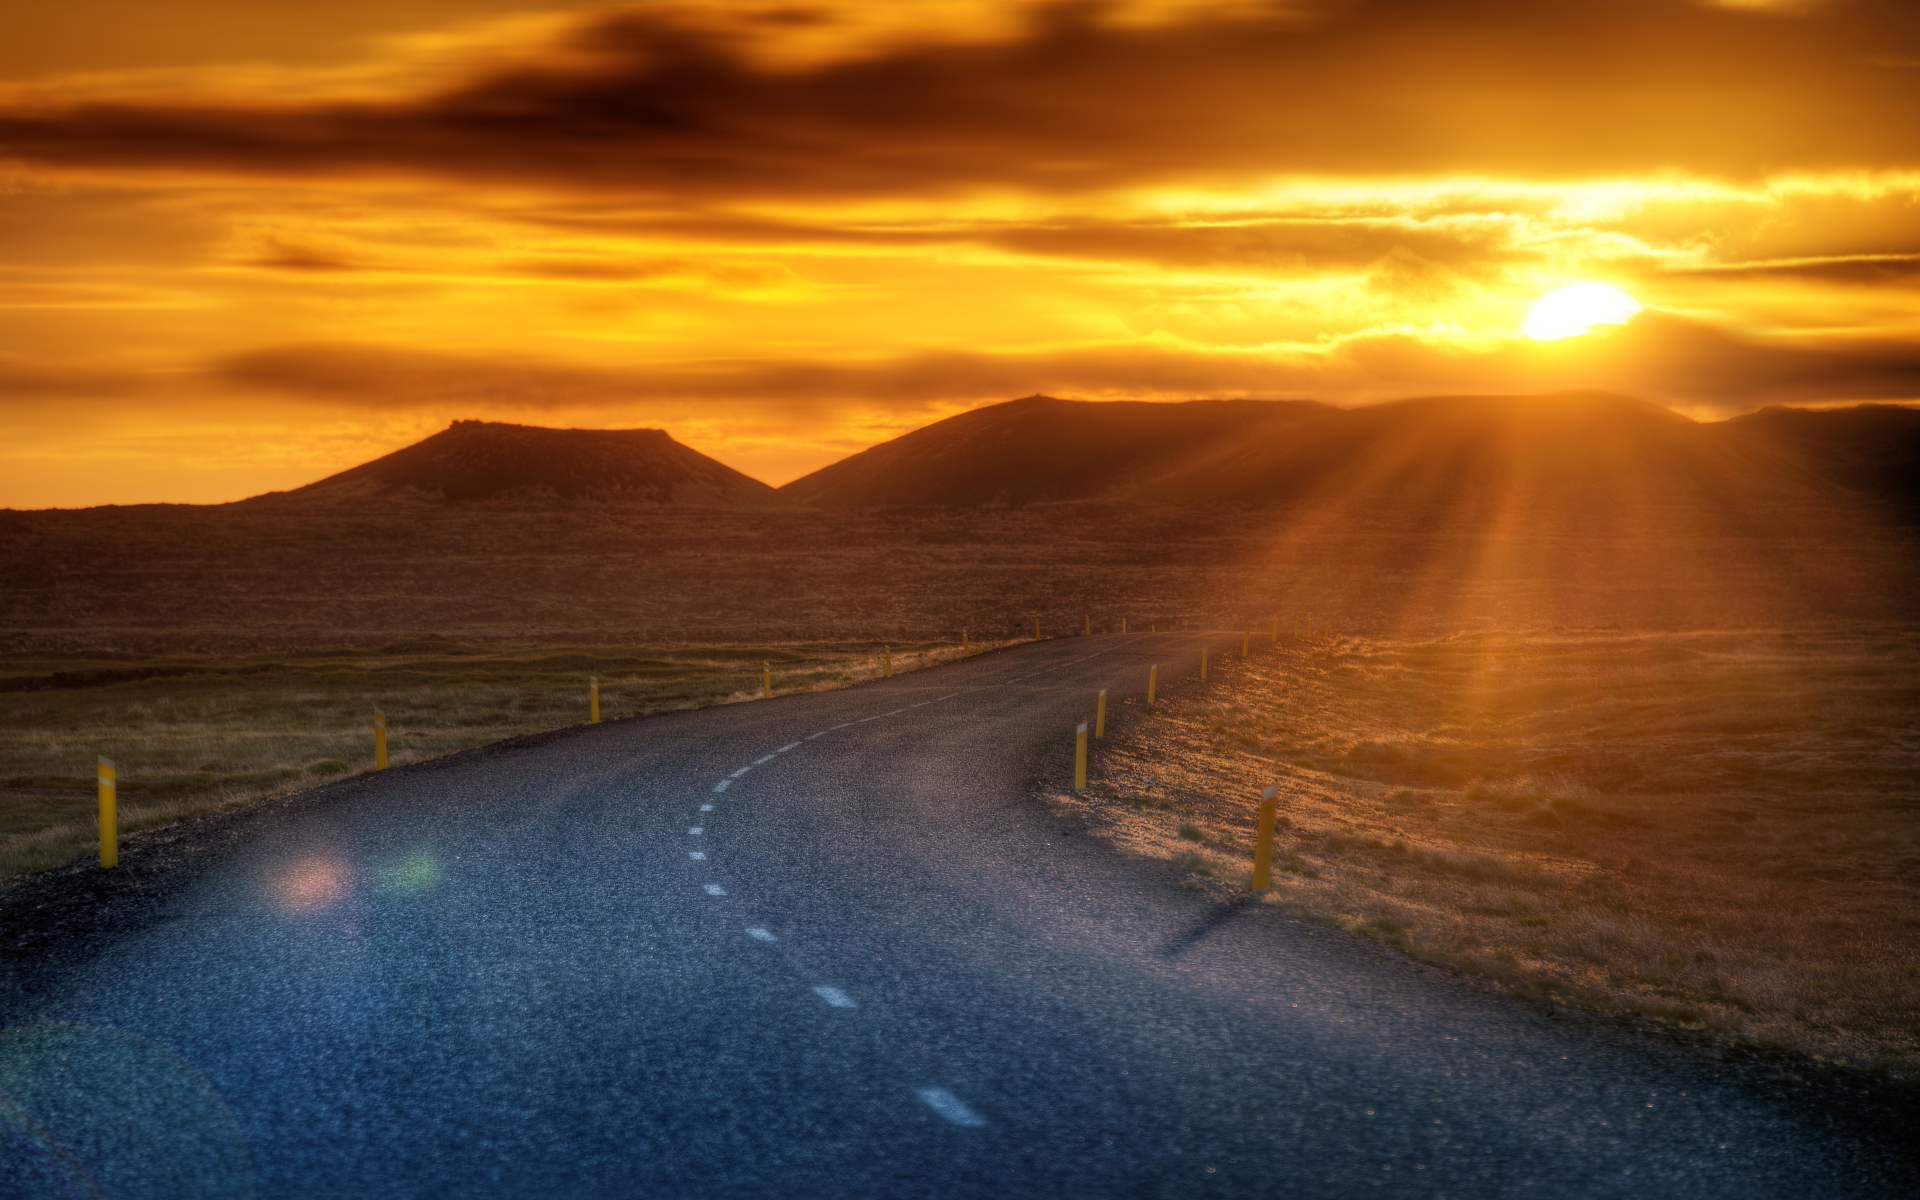 Sunset road landscape